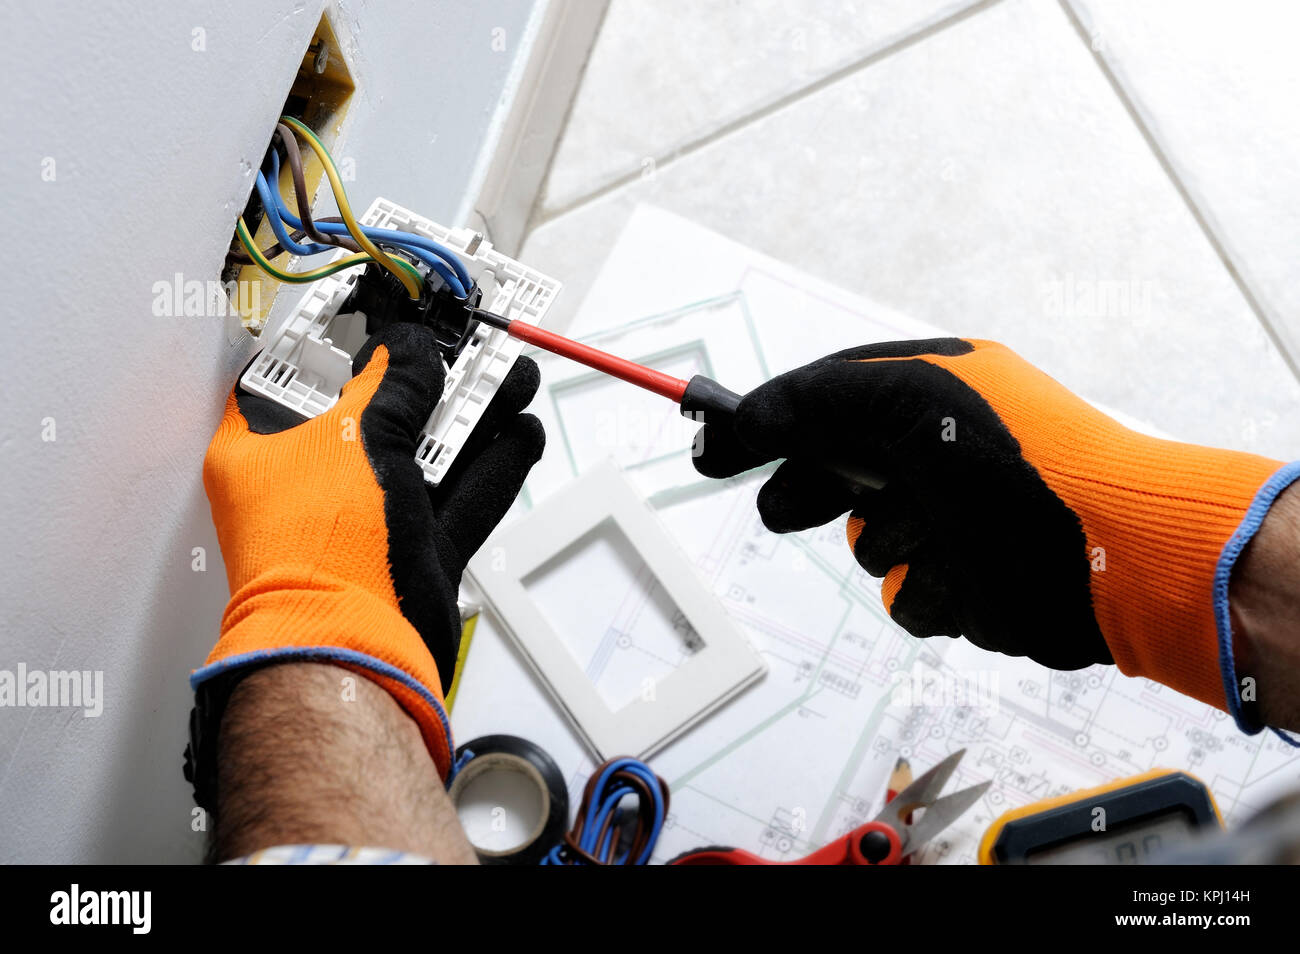 Electrician working safely on switches and sockets of a residential ...